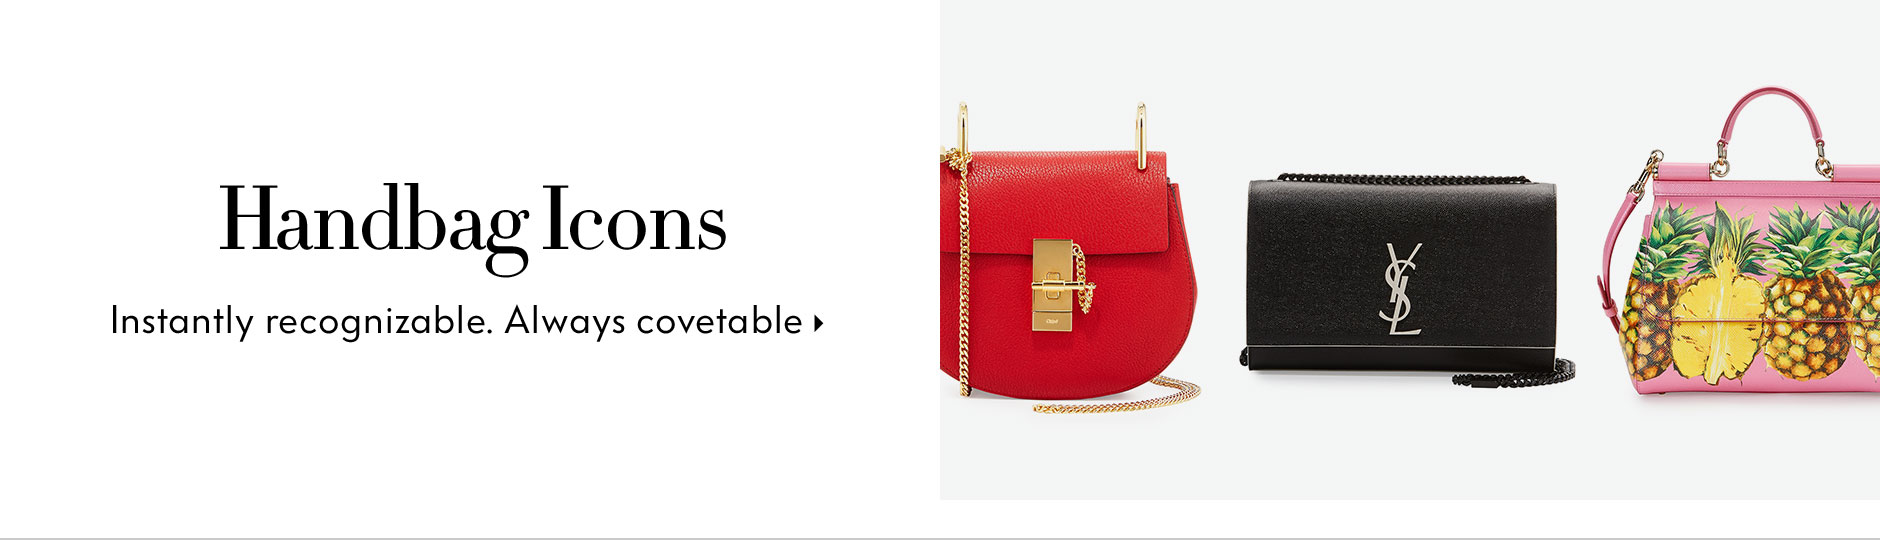 Handbag Icons Lookbook